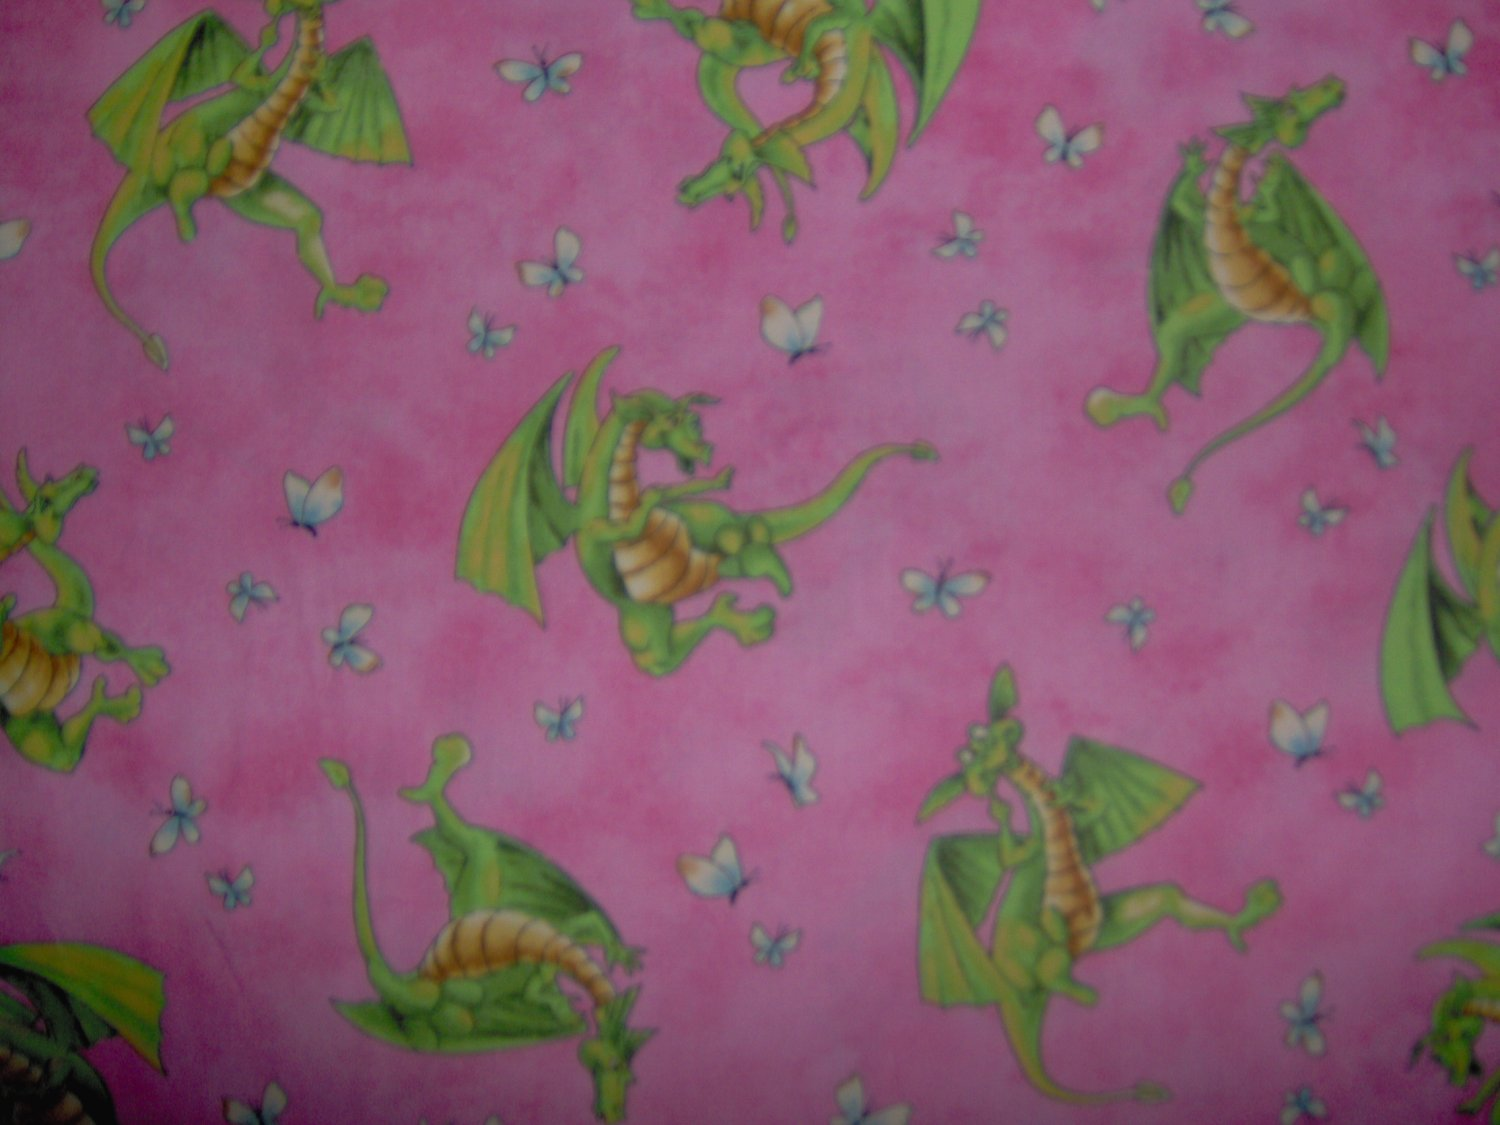 Lagon Dragon Toss on Pink Cotton Kids Fabric Bolt End by Maywood Studios